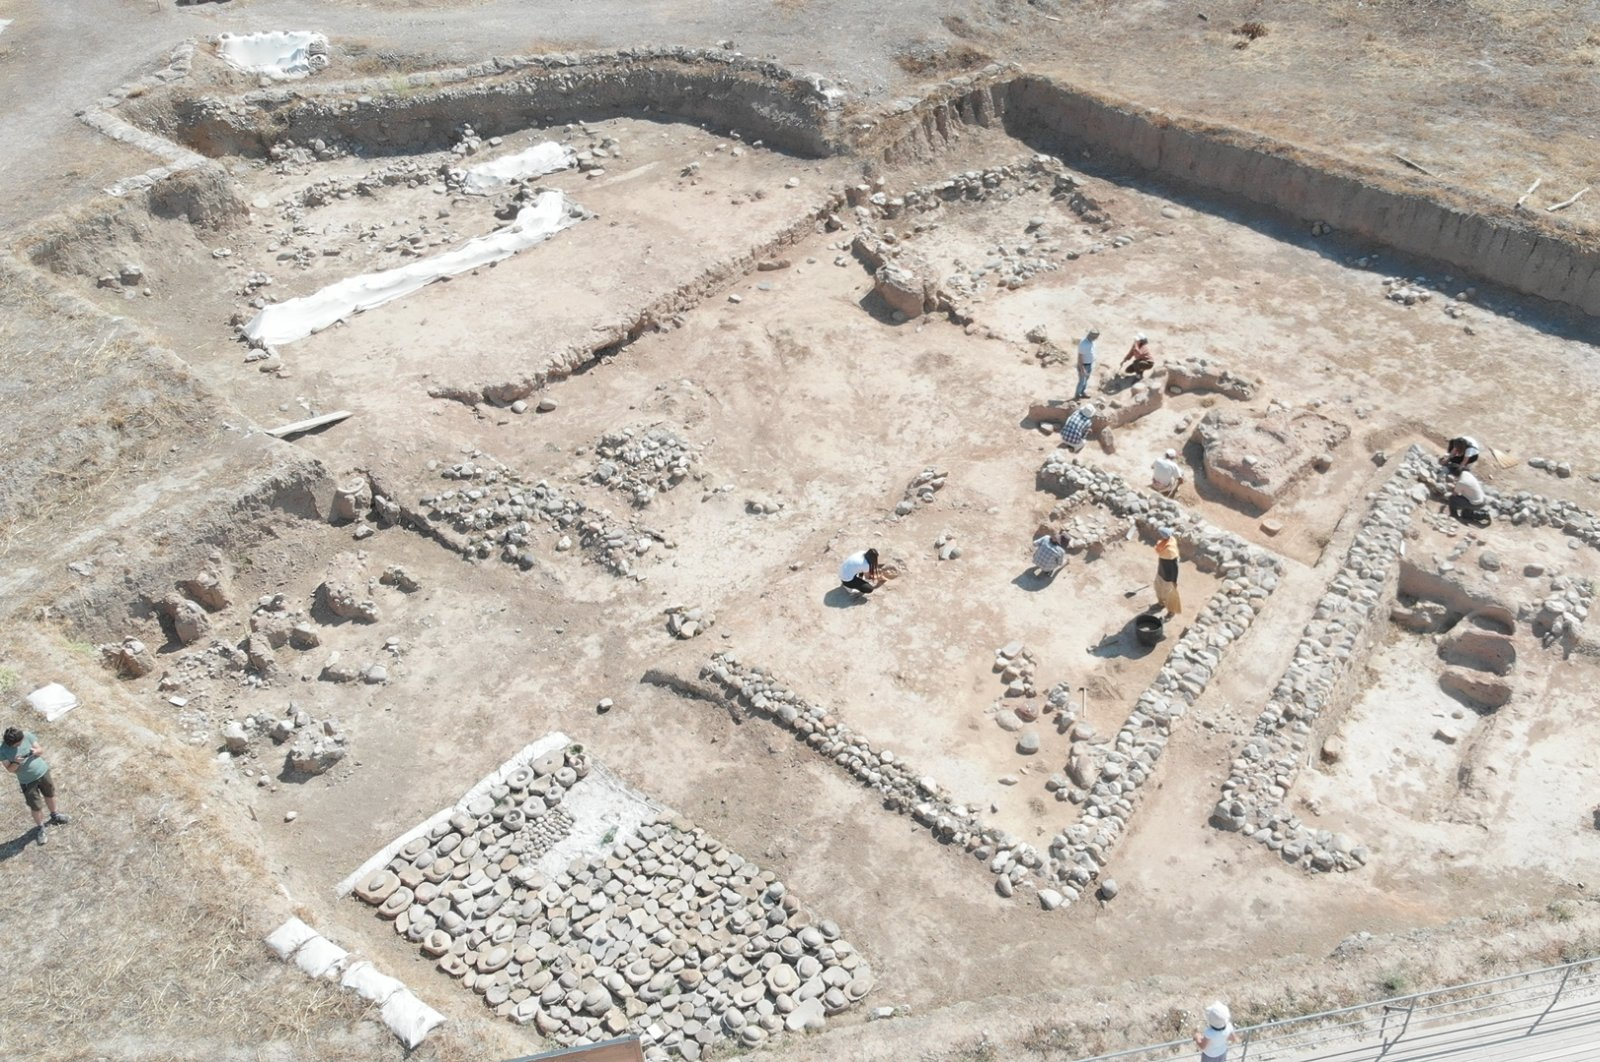 A still shot from the documentary showing excavations of Neolithic settlements in Yeşilova Mound, İzmir, western Turkey.